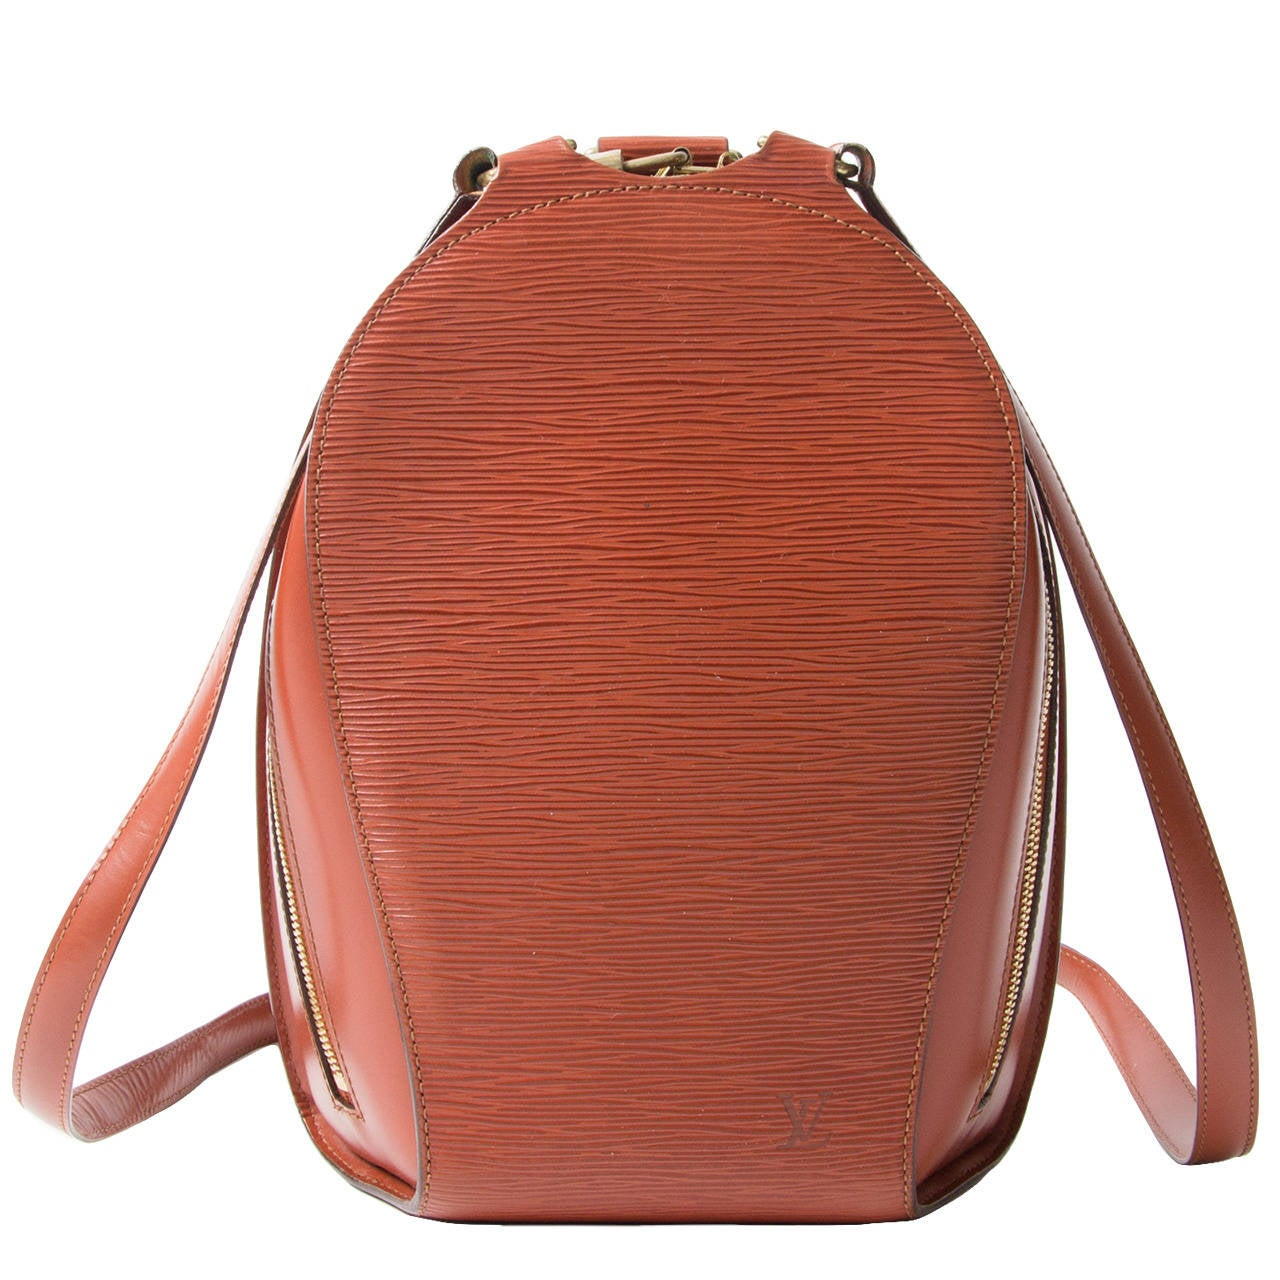 966a6322fed7 Louis Vuitton Brown Epi Mabillon Backpack at 1stdibs